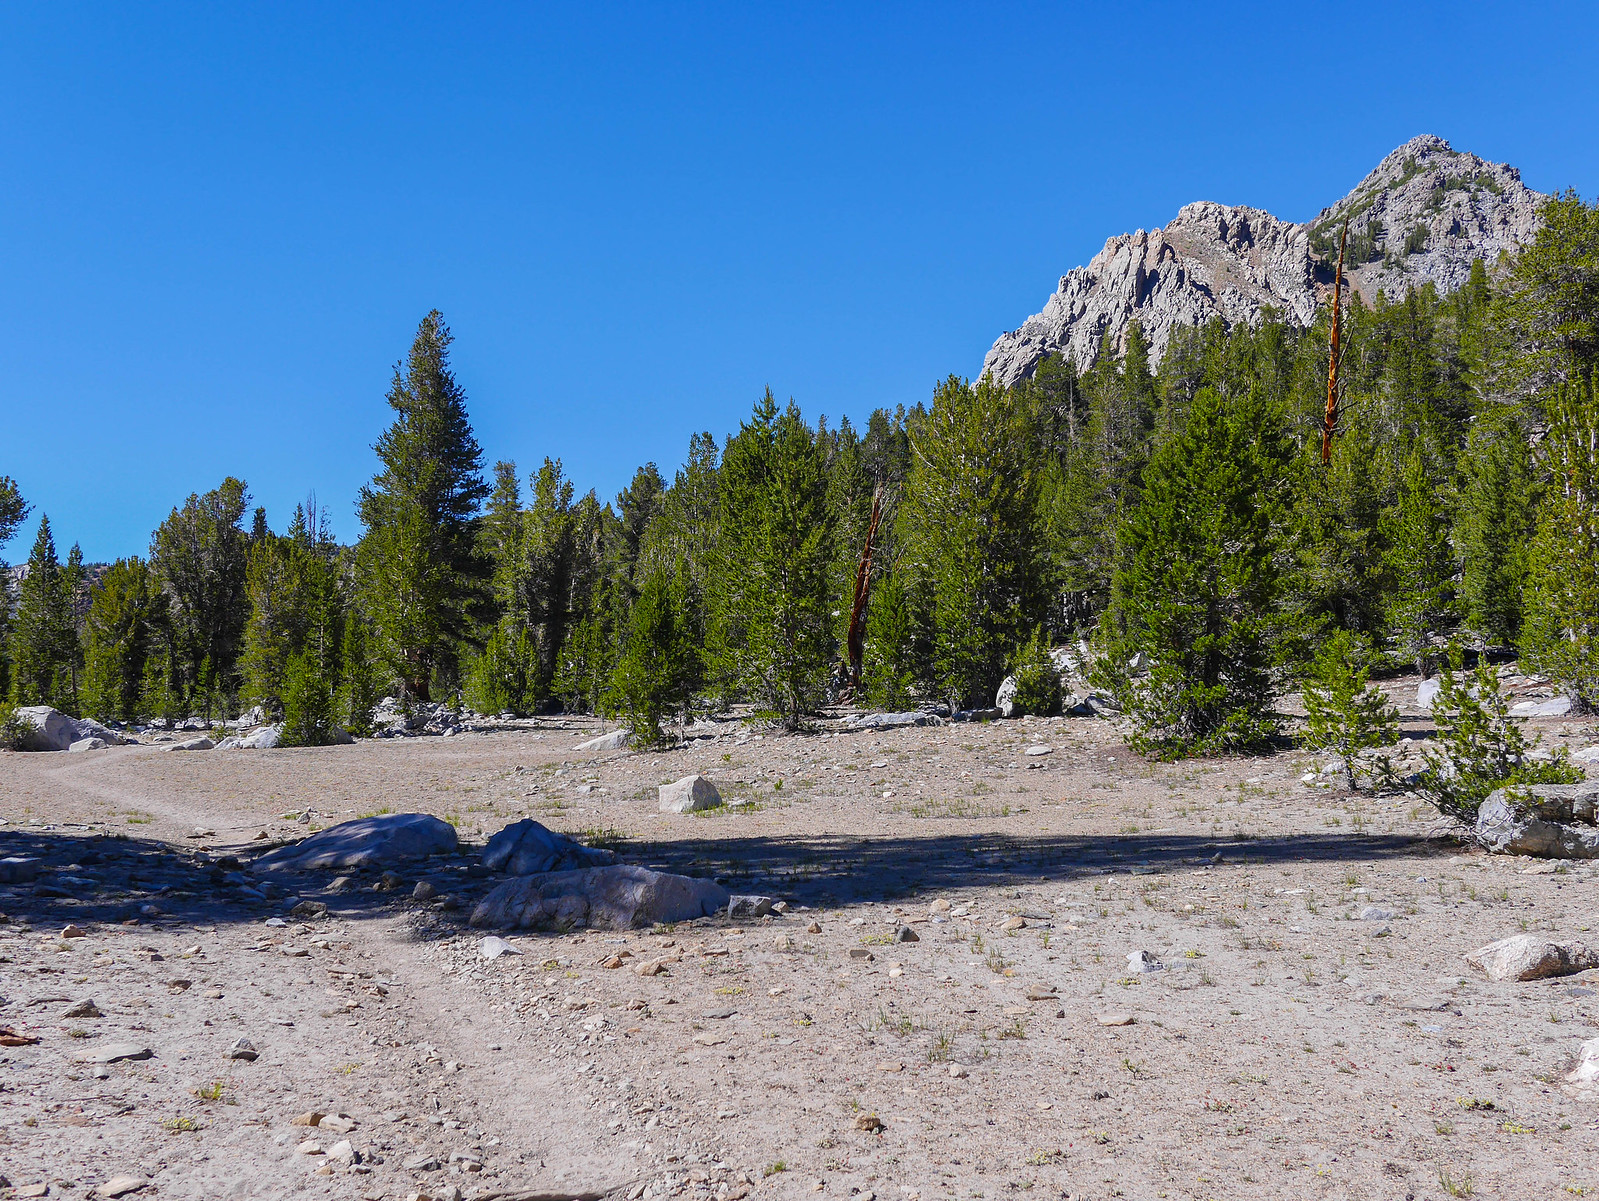 After climbing switchbacks for 900 feet, the flat plateau is a welcome respite